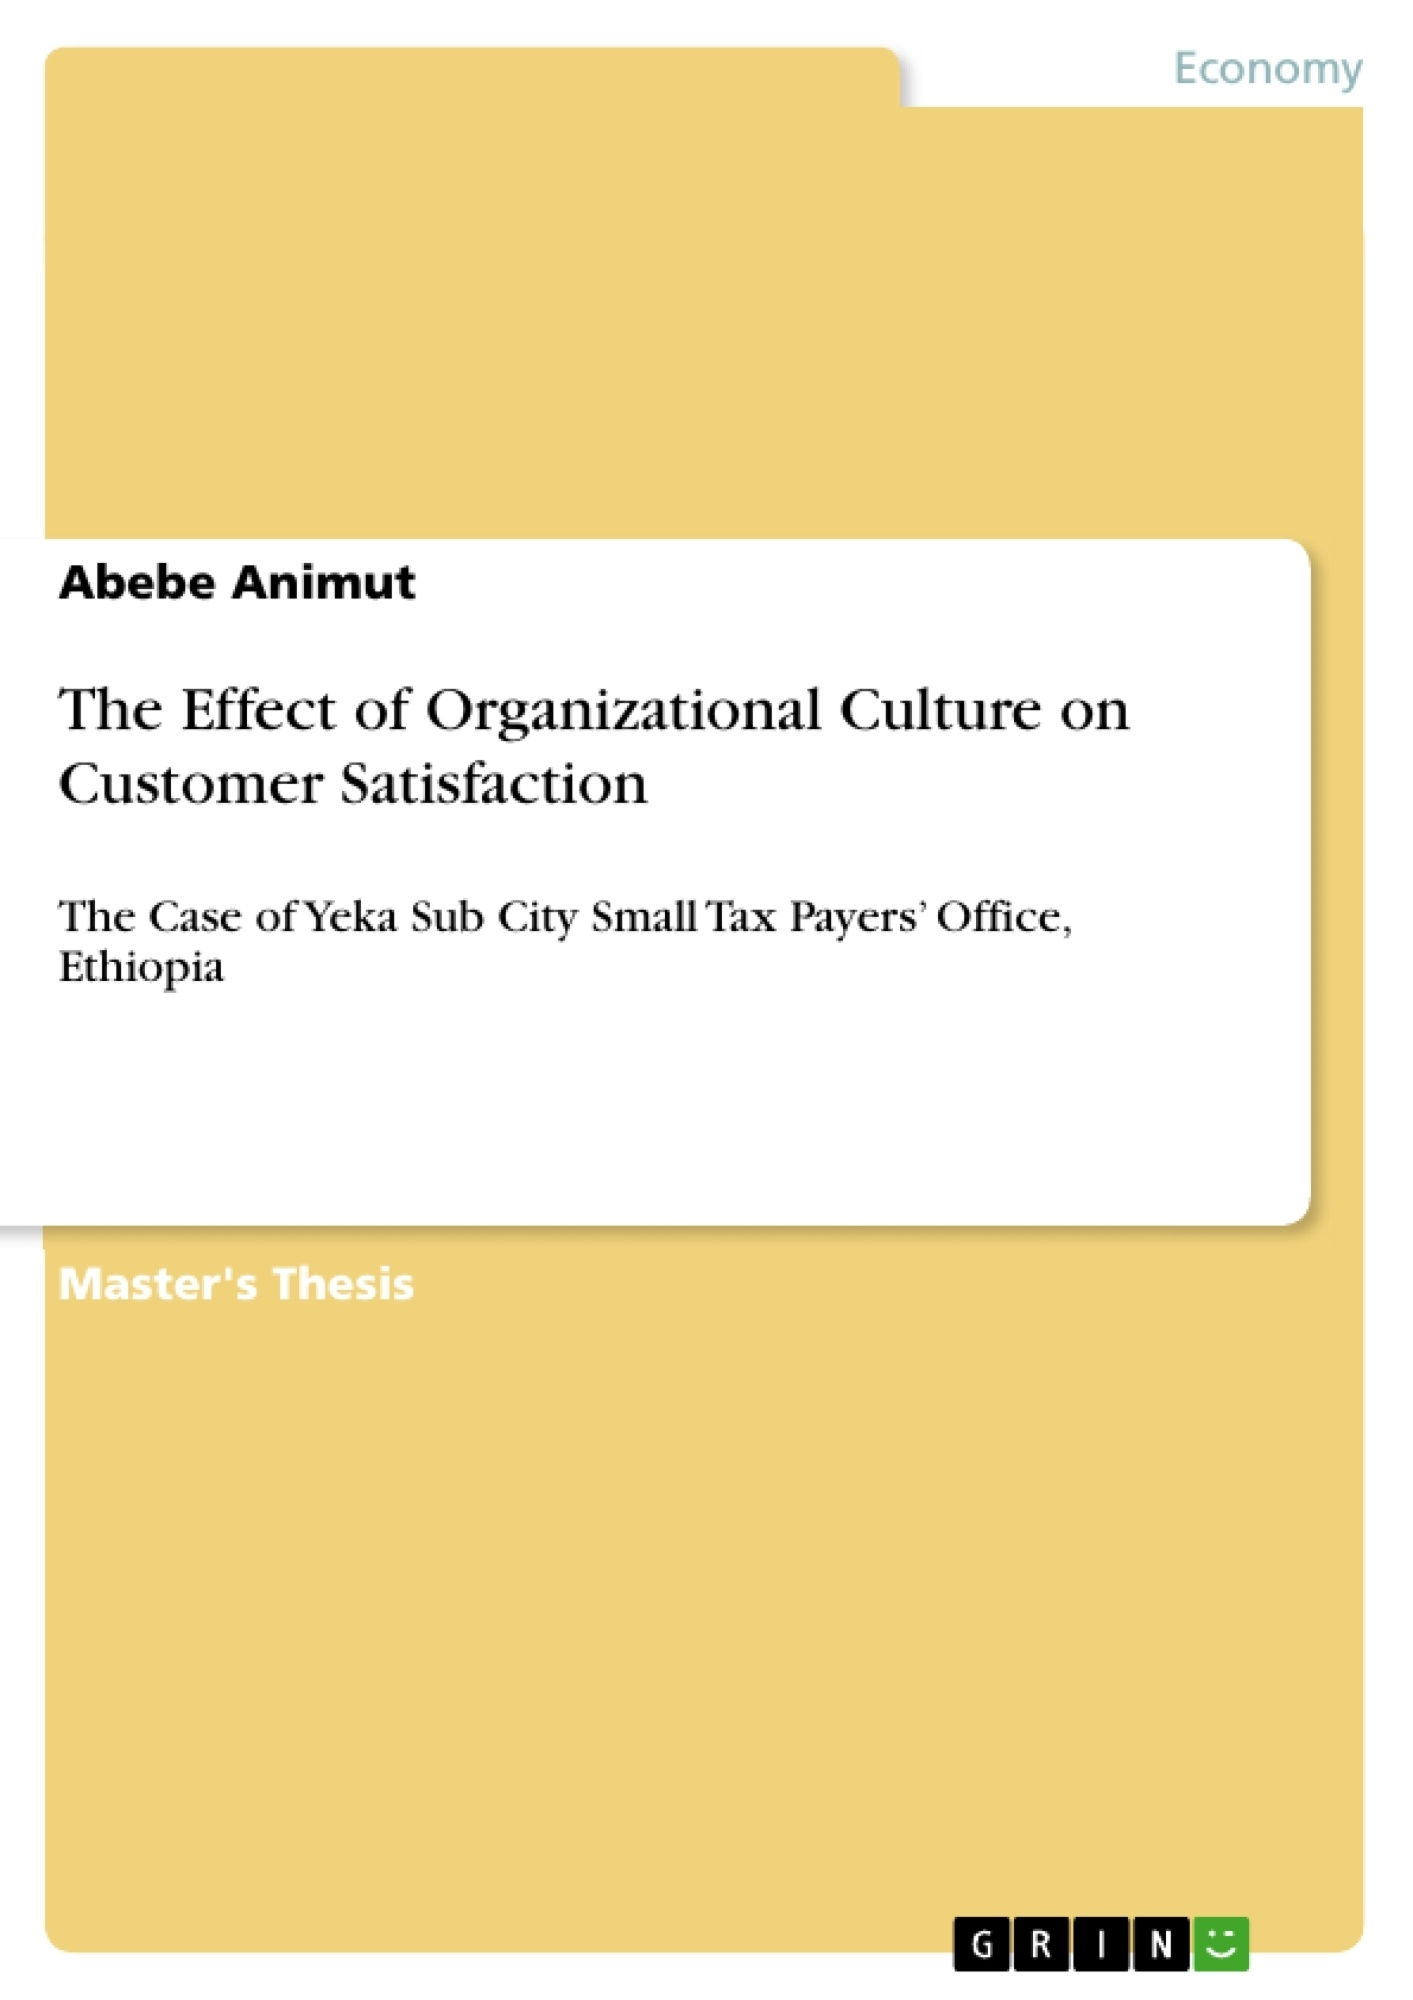 Title: The Effect of Organizational Culture on Customer Satisfaction